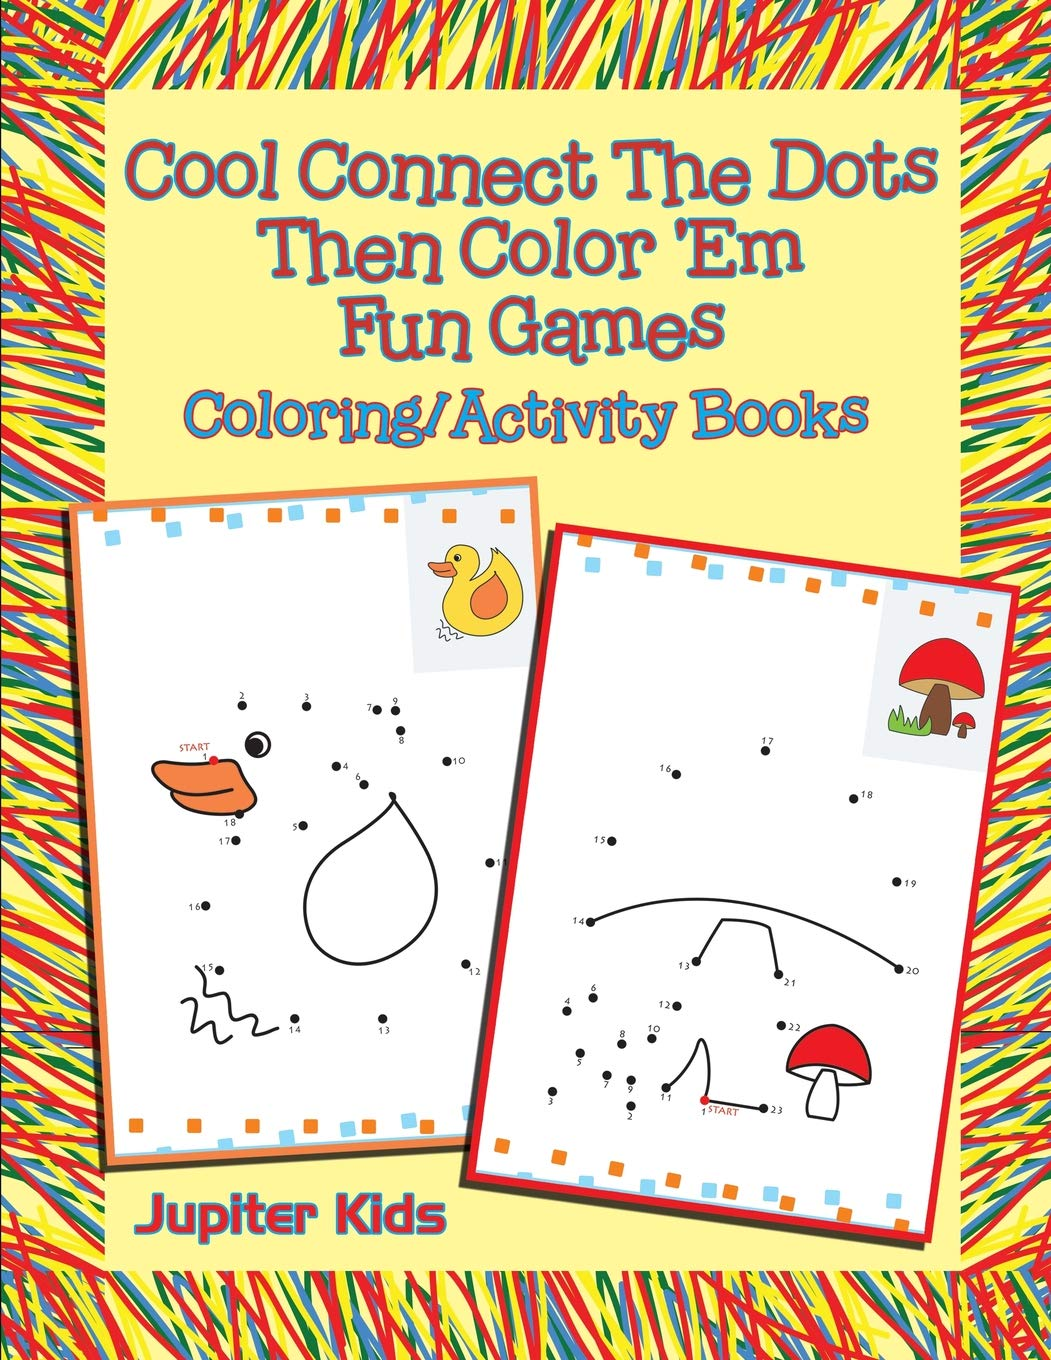 - Cool Connect The Dots Then Color 'Em Fun Games: Coloring/Activity